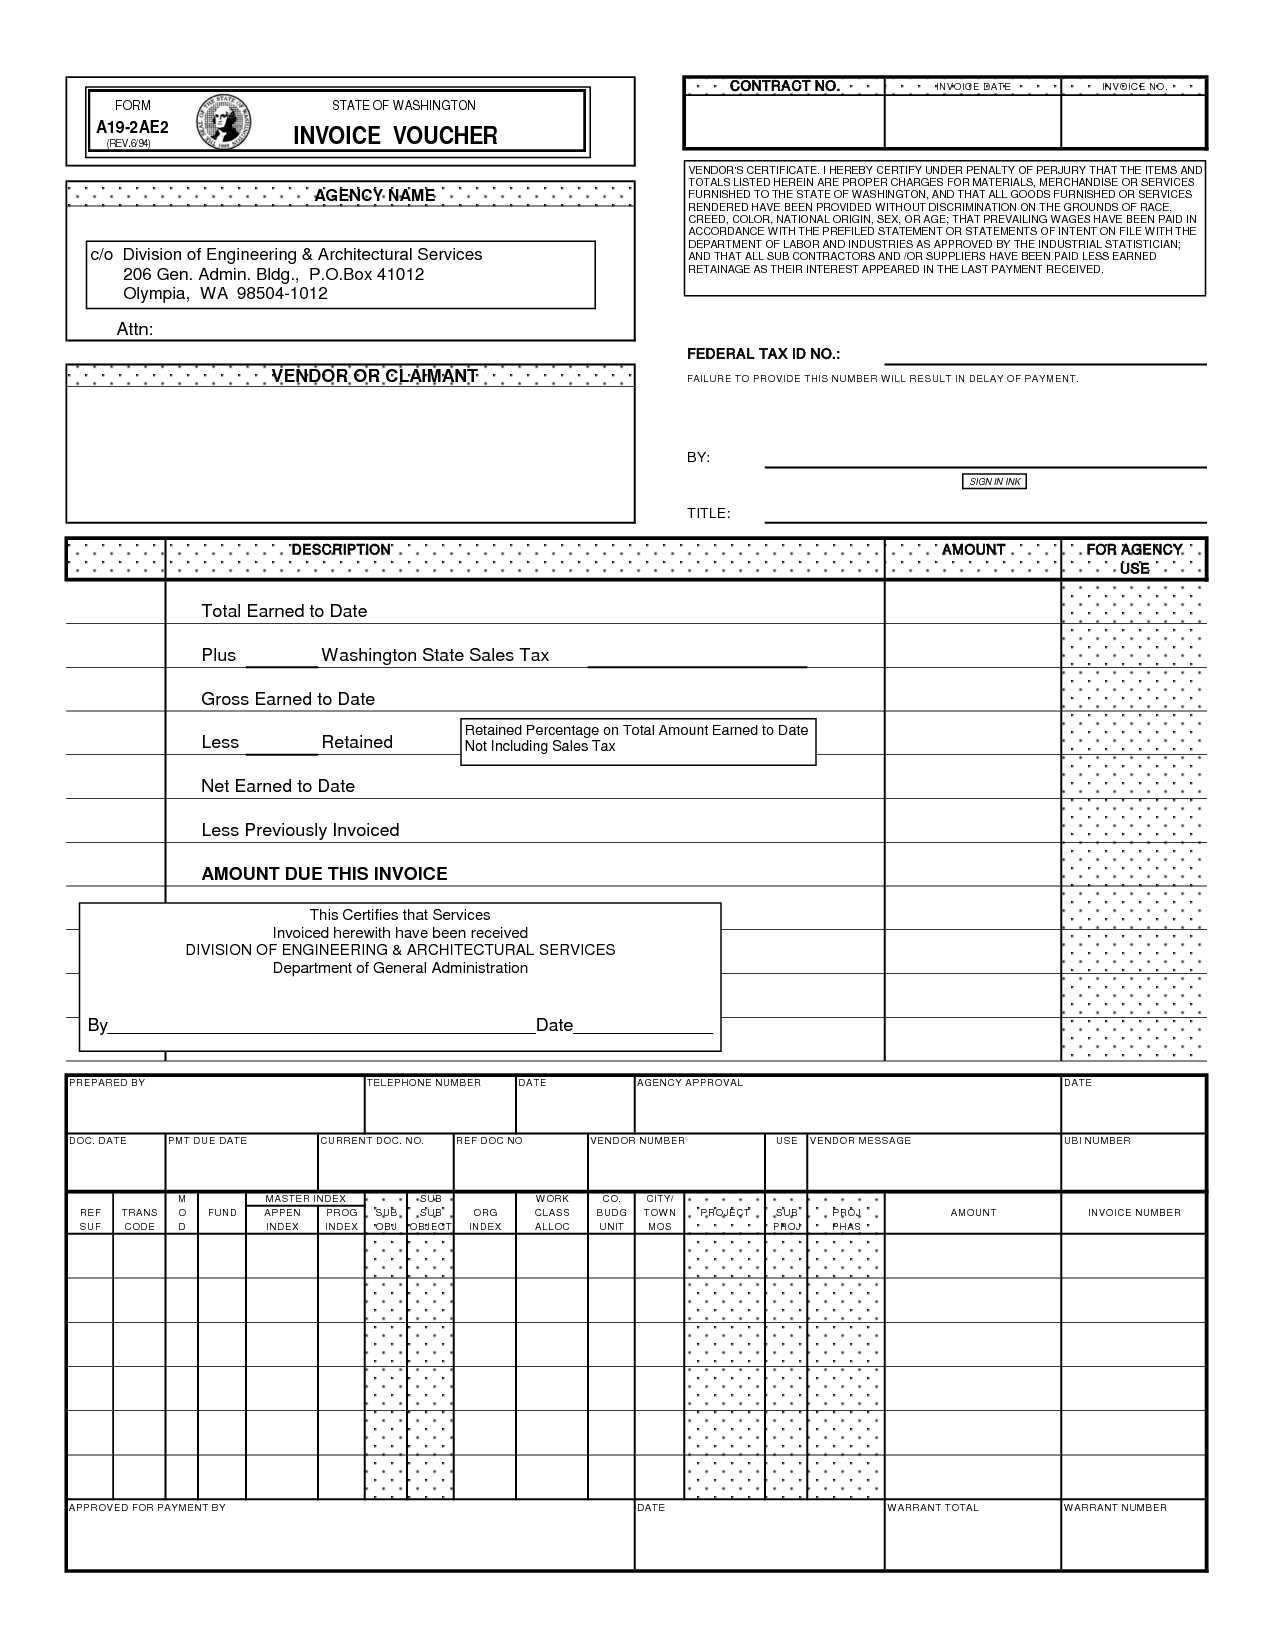 Independent Contractor Invoice Template Free Download Independent Contractor Invoice Sample Spreadsheet Templates for Busines Spreadsheet Templates for Busines Independent Contractor Invoice Sample